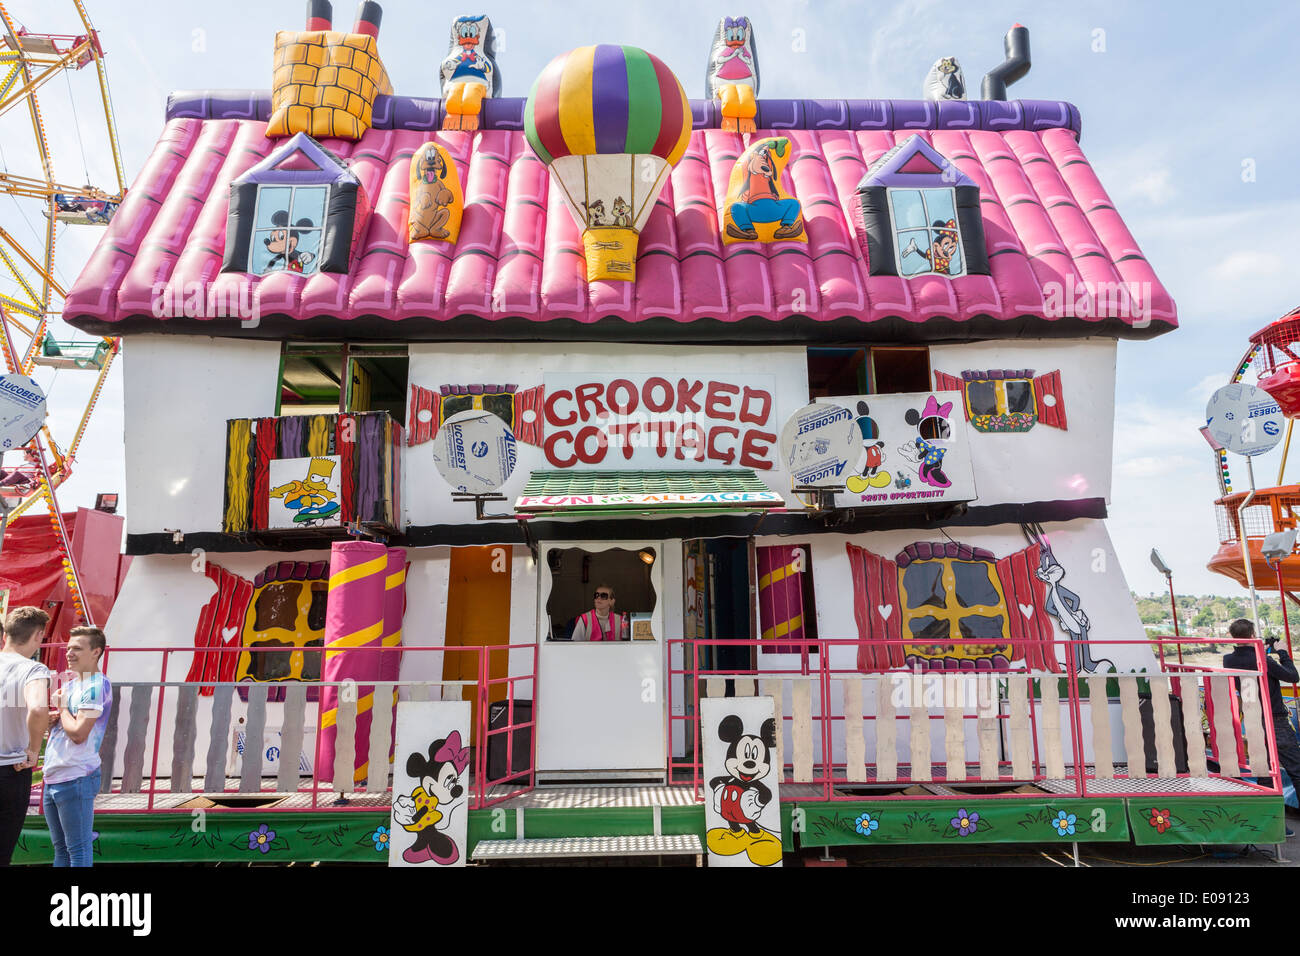 Crooked Cottage Attraction at Funfair - Stock Image